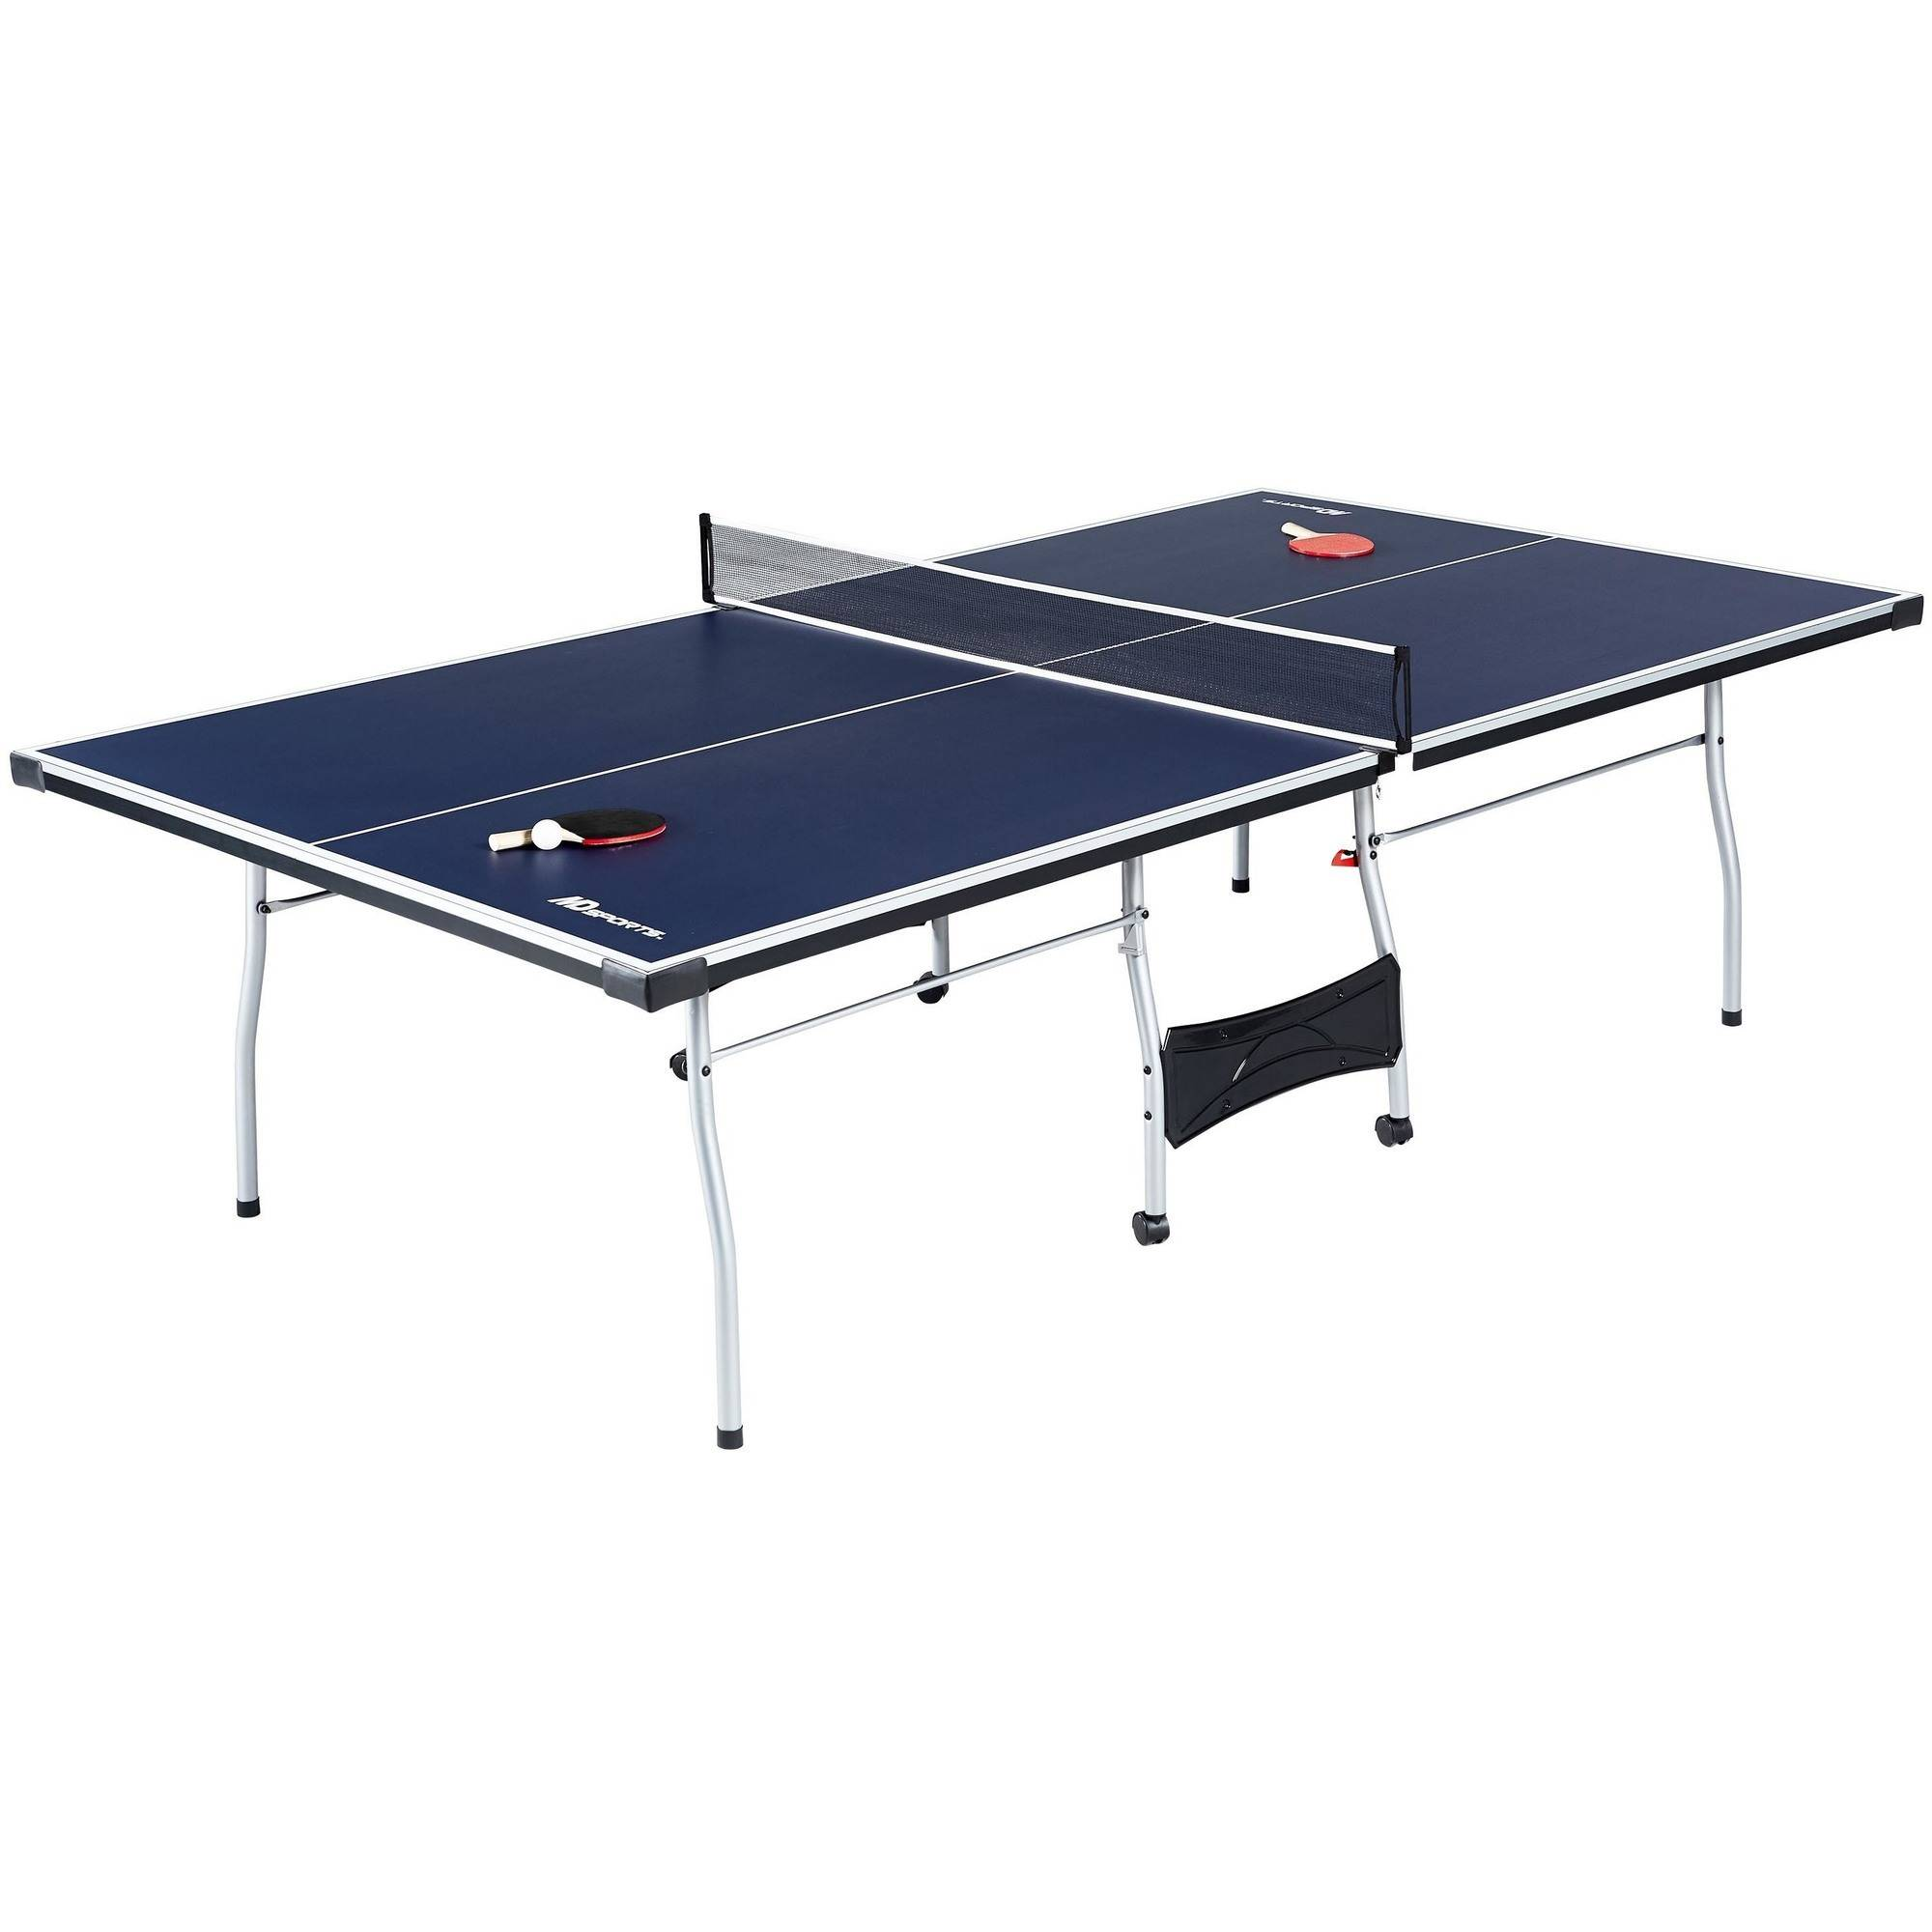 Charmant MD Sports Official Size Table Tennis Table, With Paddle And Balls,  Blue/White